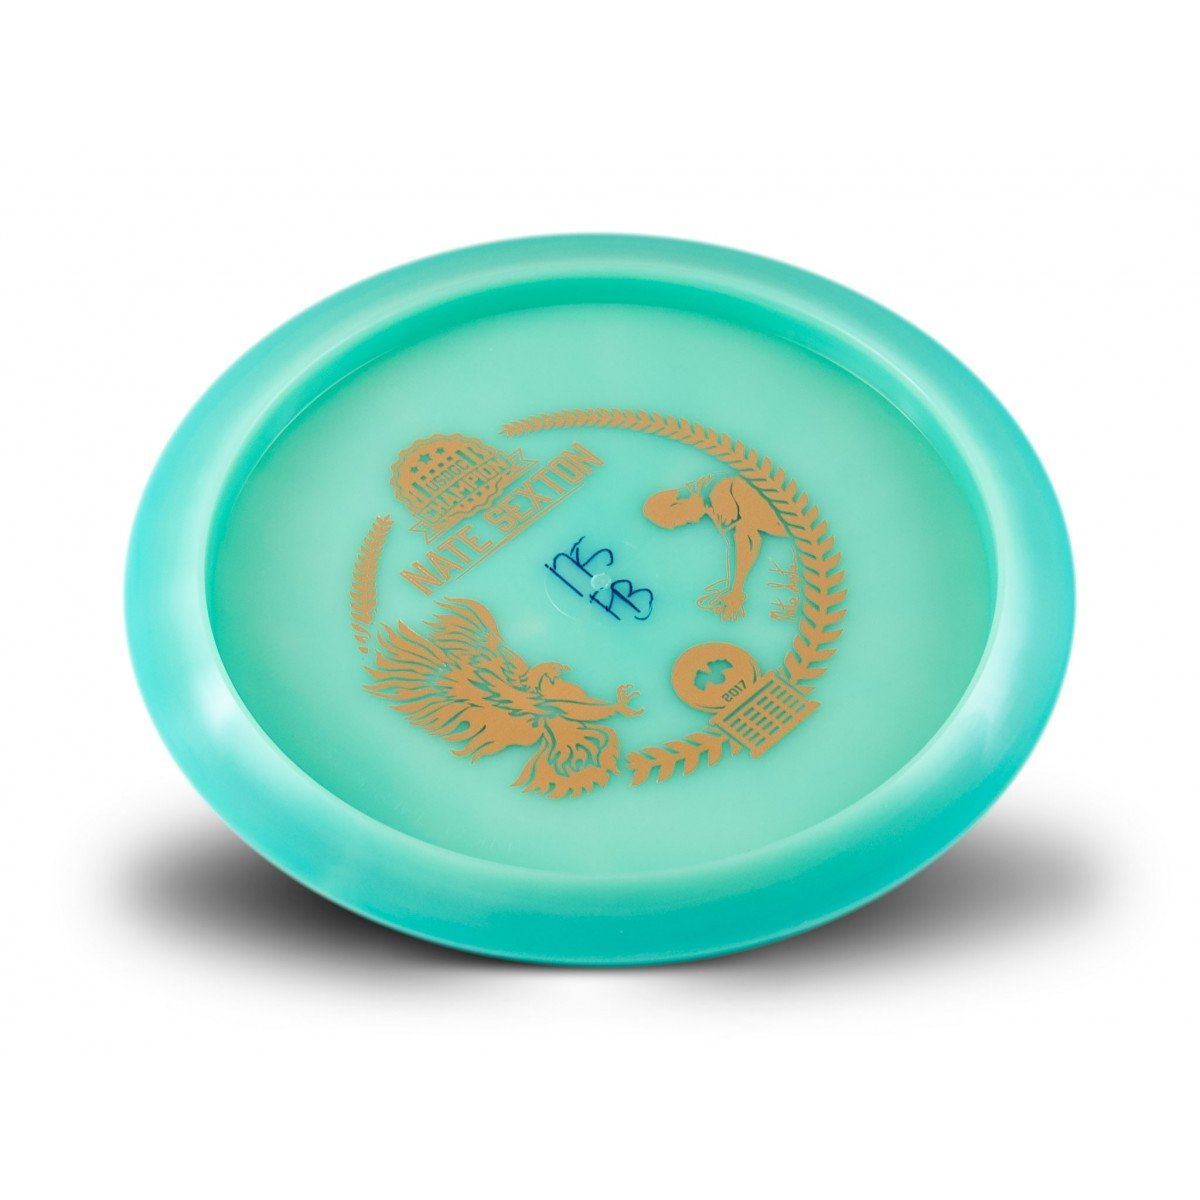 INNOVA Limited Edition Champion Glow Firebird Nate Sexton 2017 Commemorative Overstable Disc Golf Distance Driver (Color May Vary) (Gold) by INNOVA